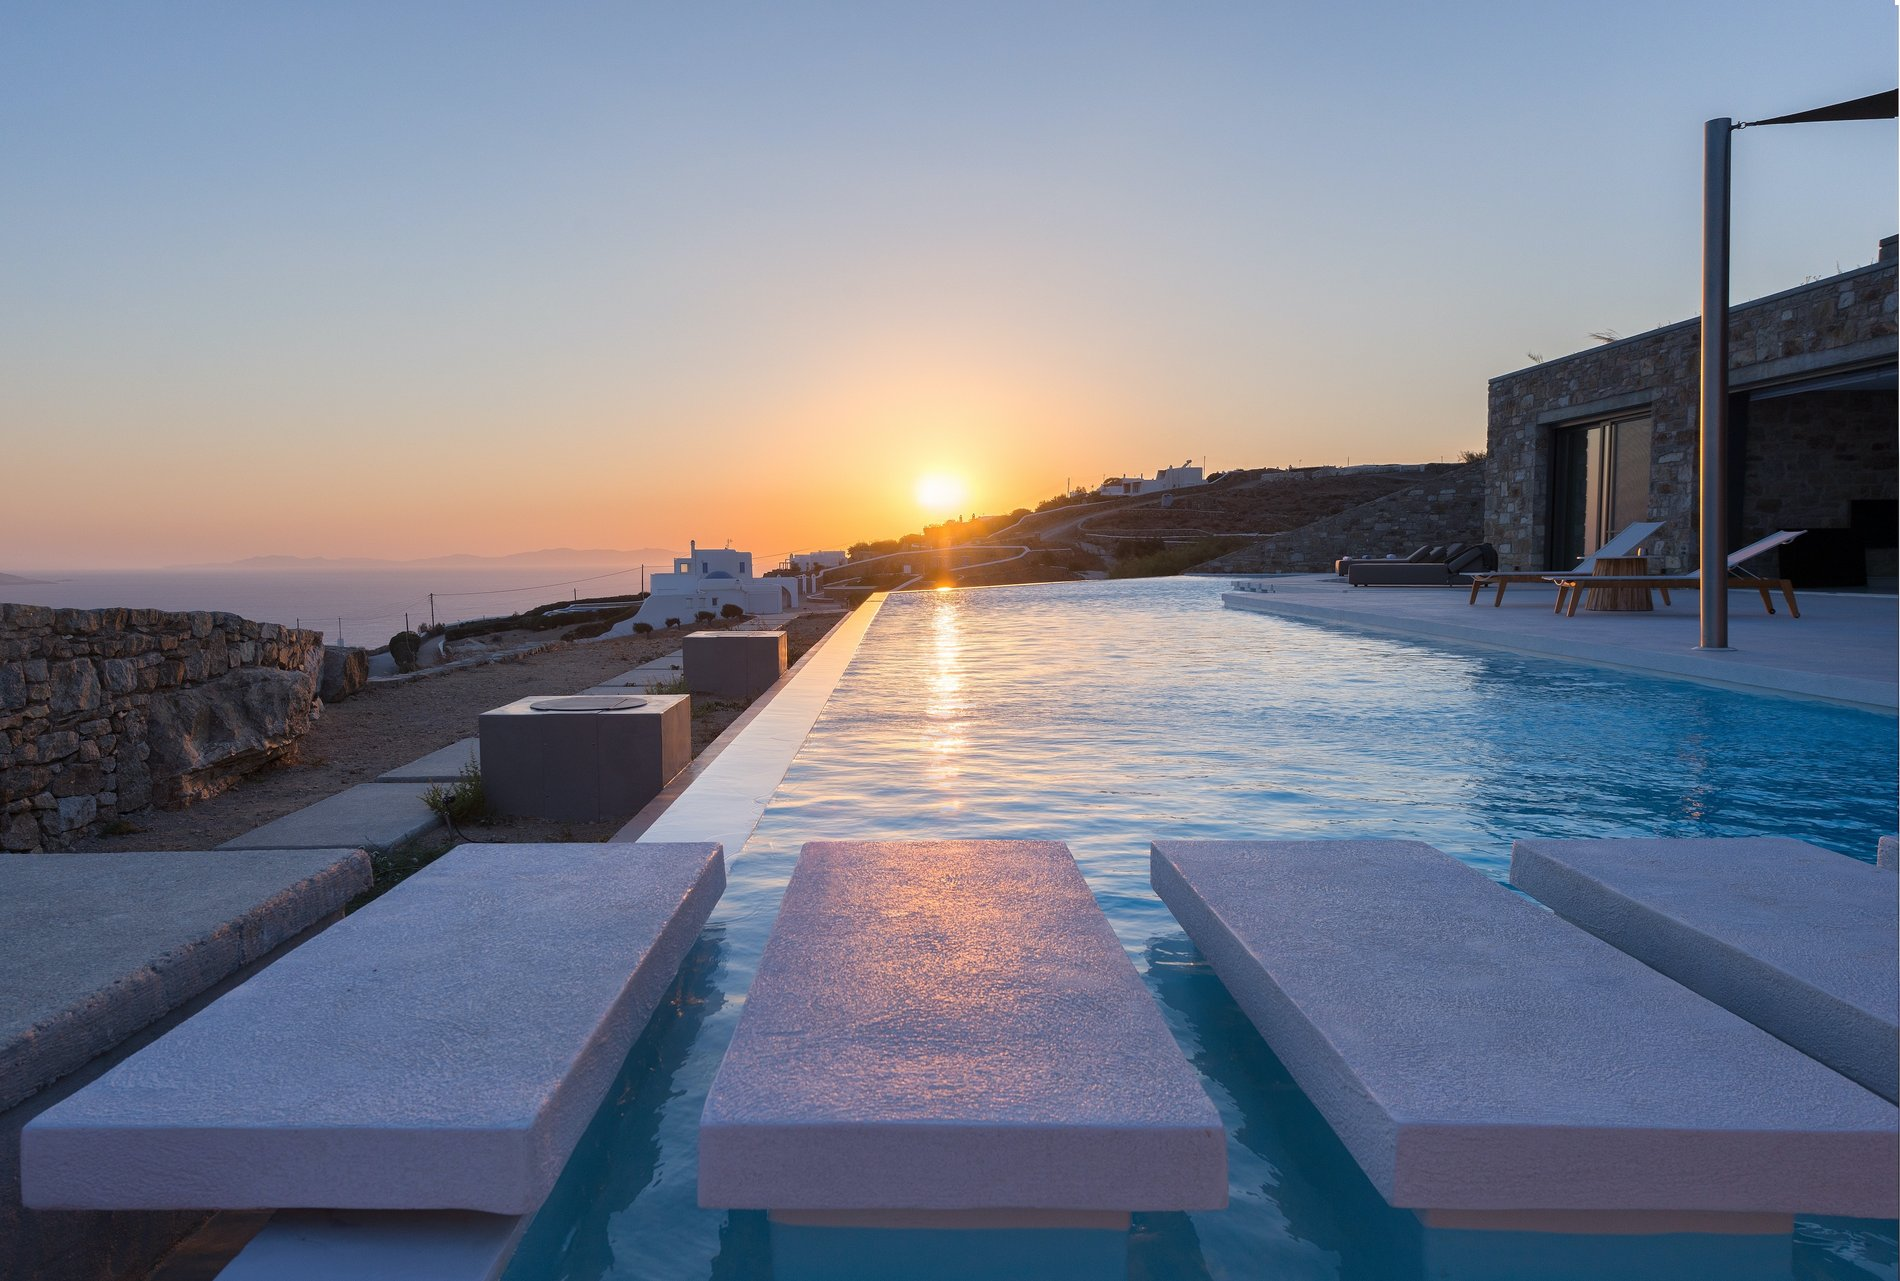 Sunset view from the infinity edge pool and floating stairs.